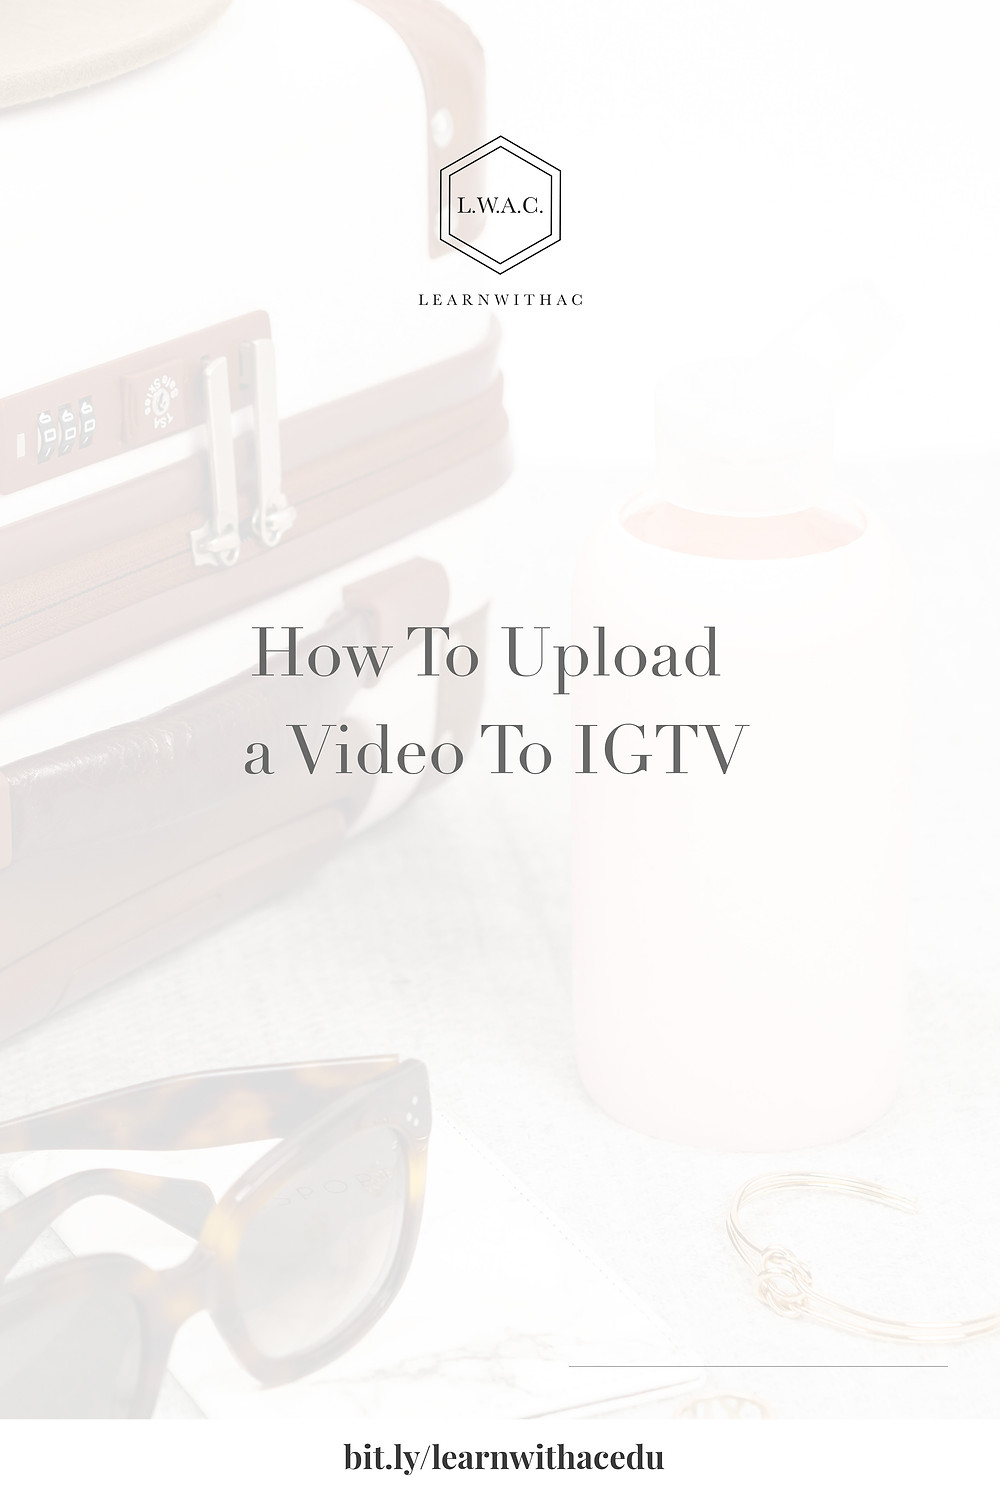 How To Upload a Video To IGTV